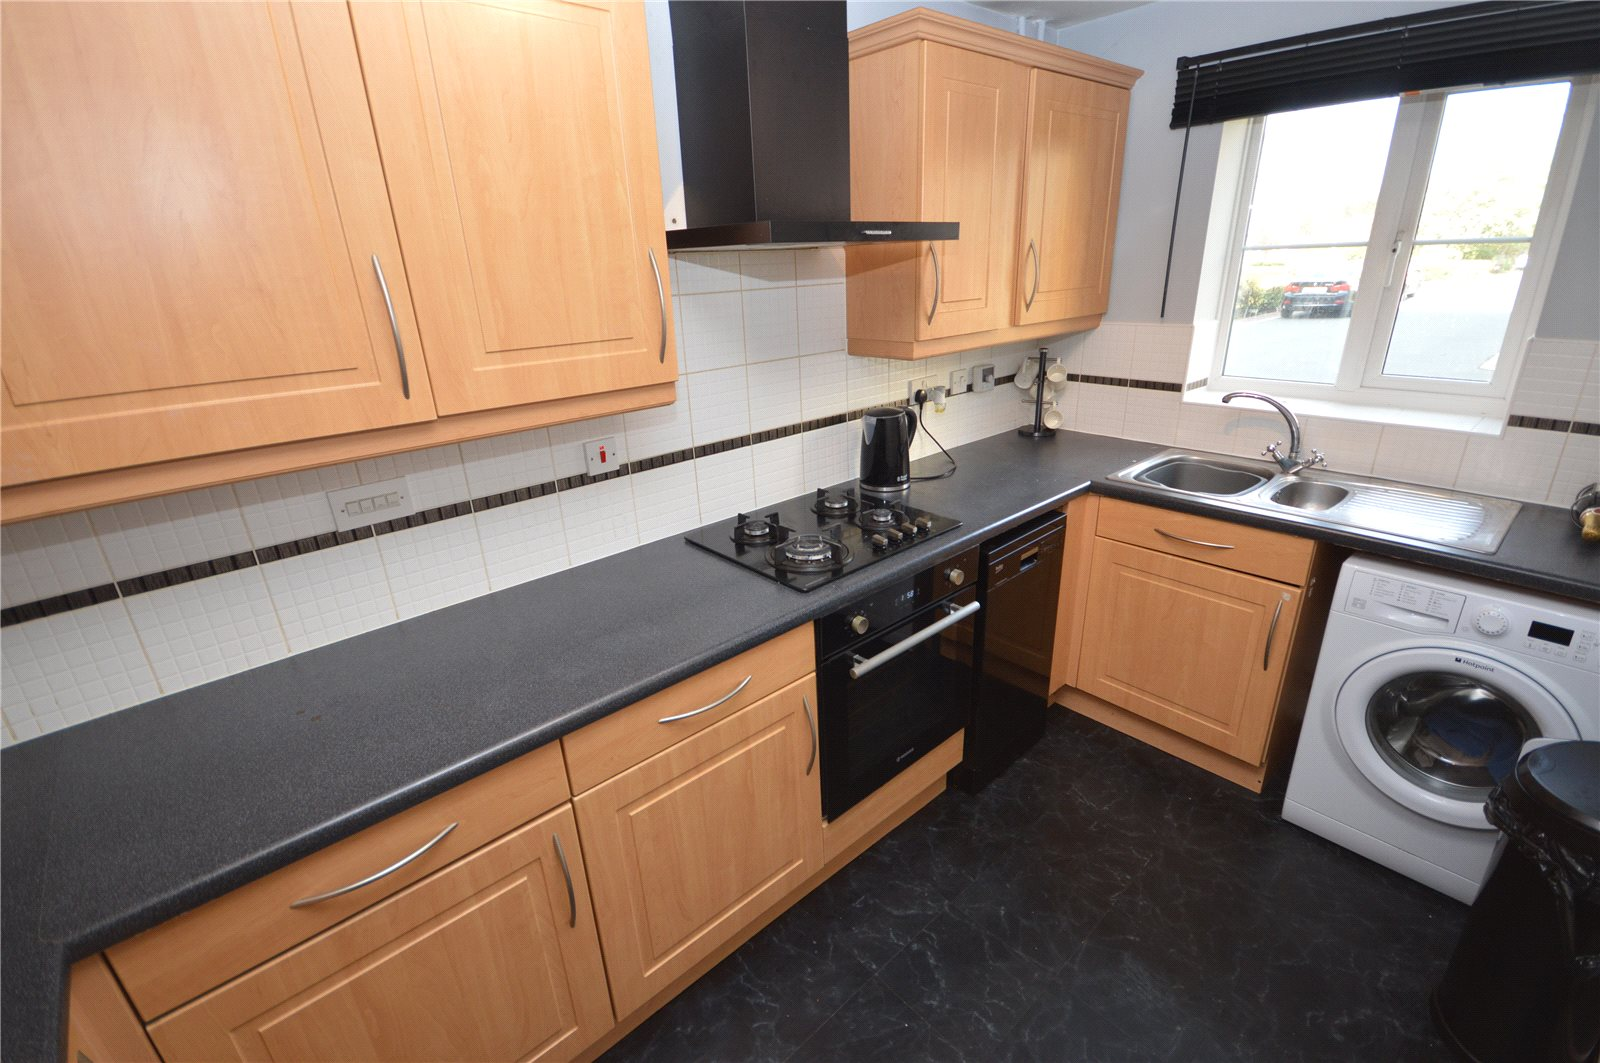 property for sale in Bradford, interior fitted kitchen